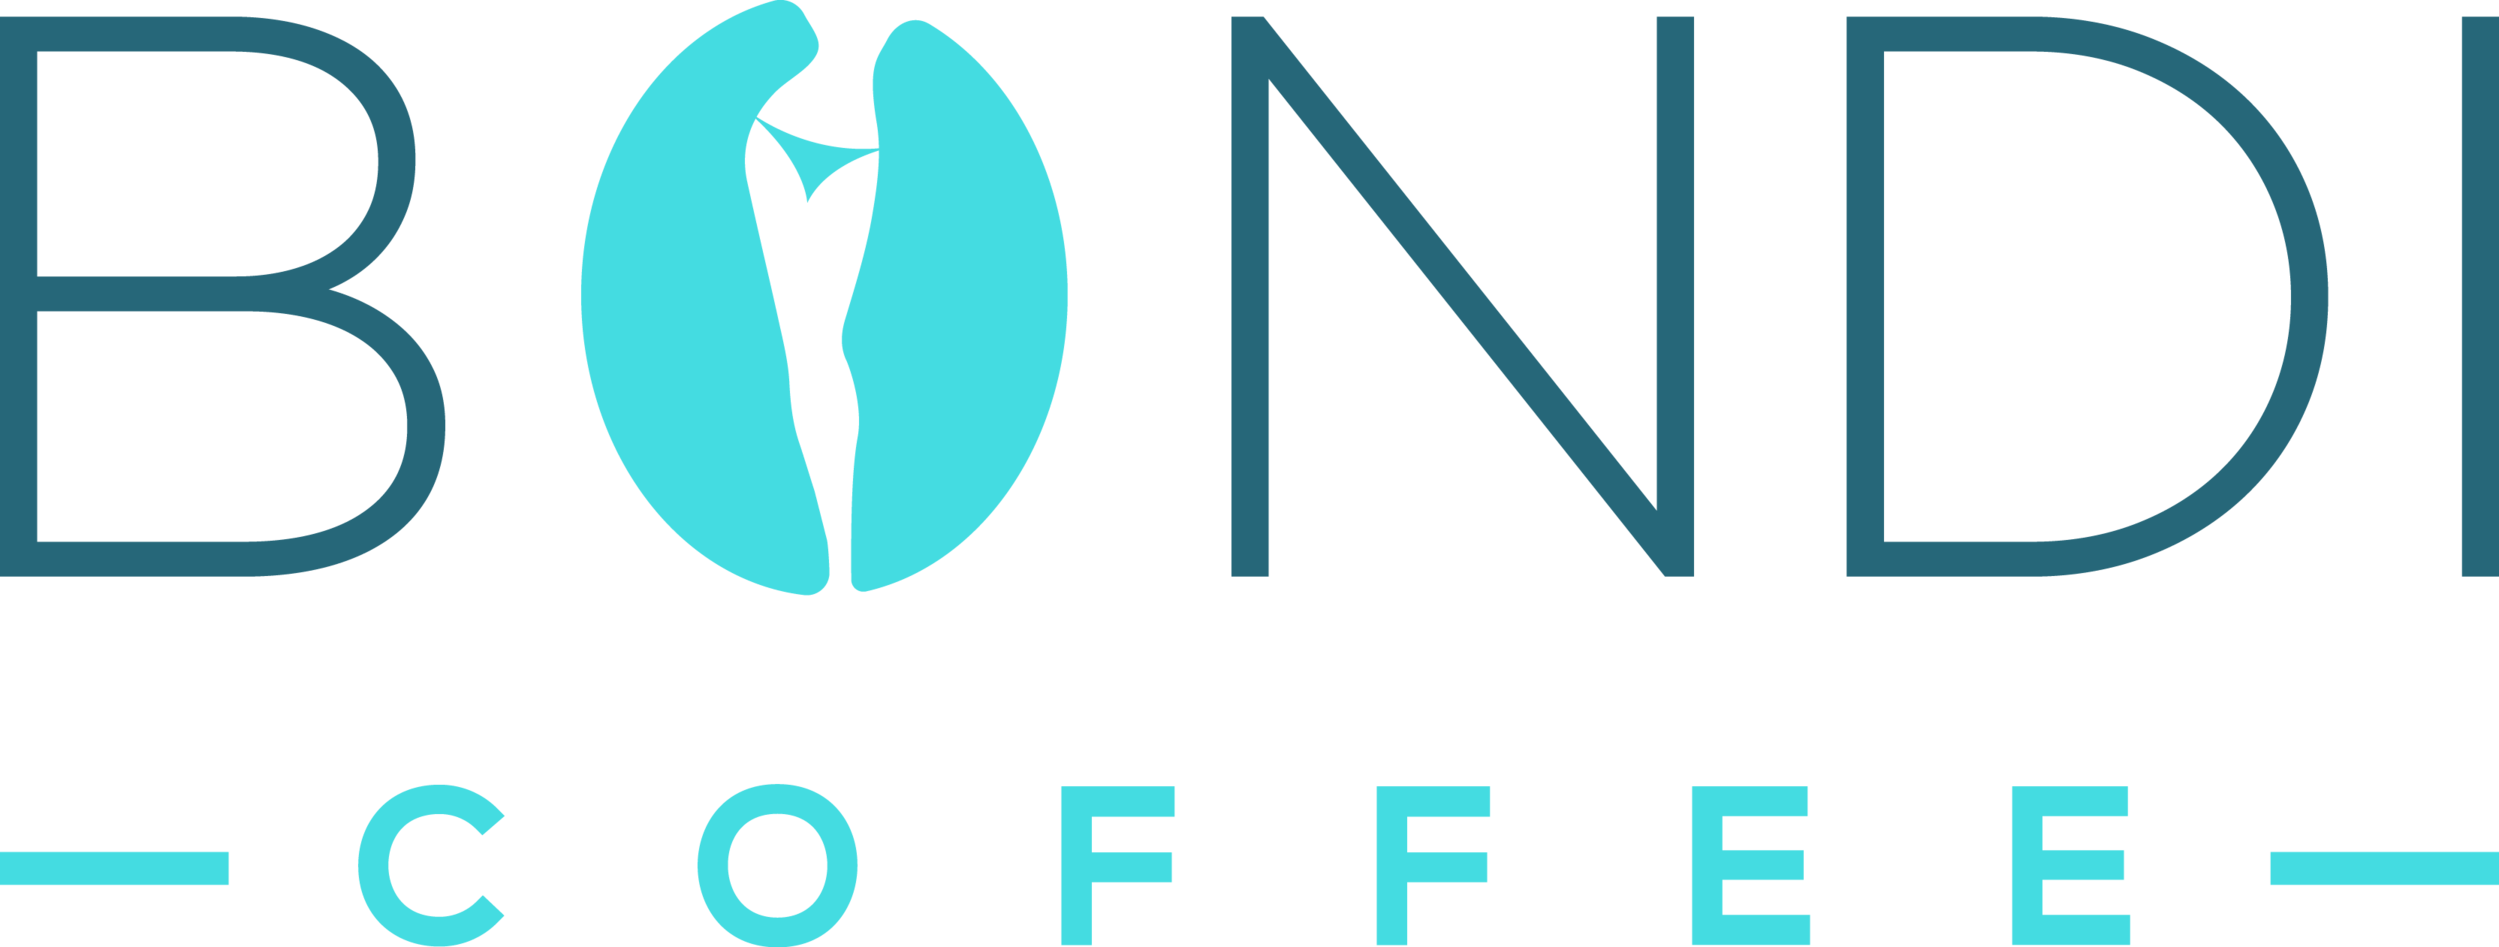 Bondi-Coffee-Weight-Loss-Coffee-Logo_2500x